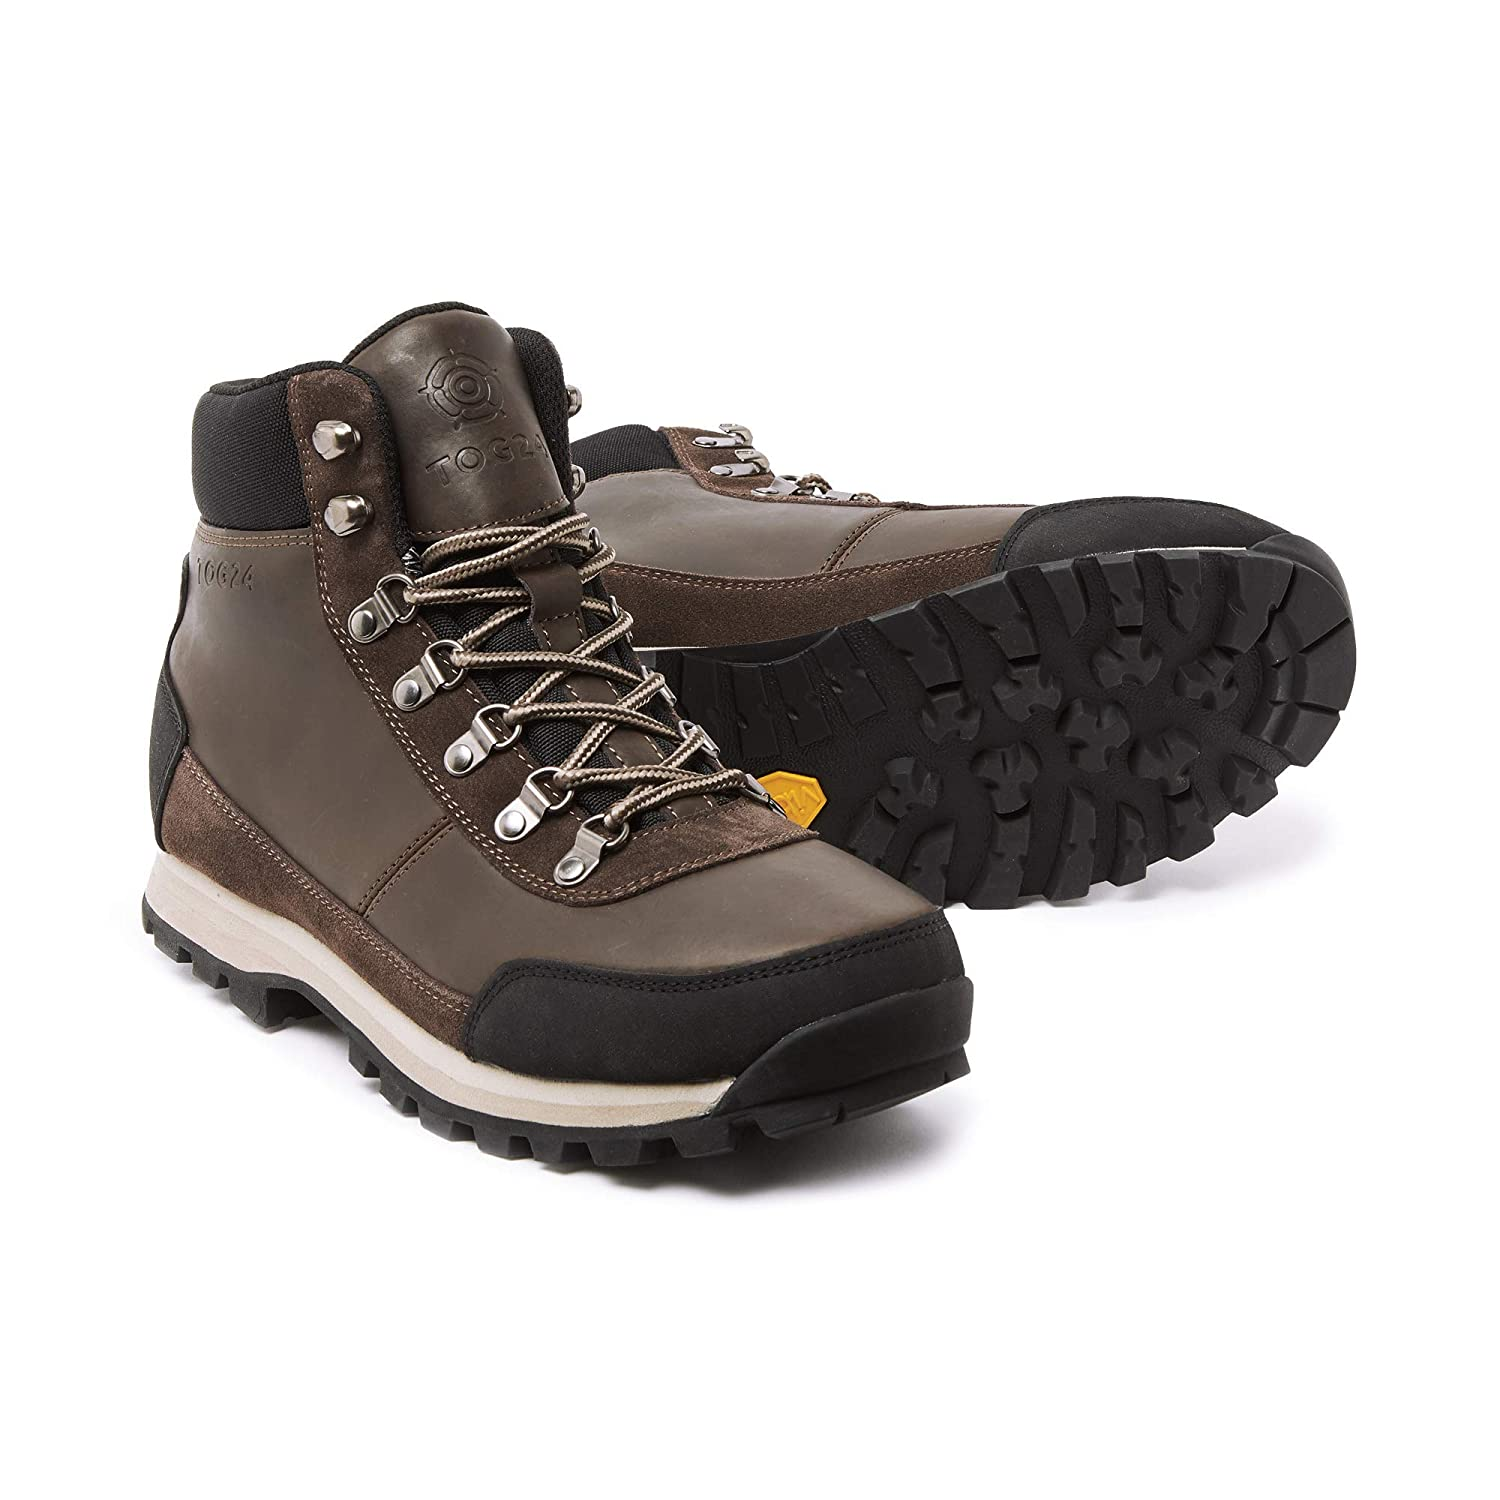 dd25403bb29 TOG 24 Whernside Mens Waterproof Hill Walking Boots Ideal for Hiking ...